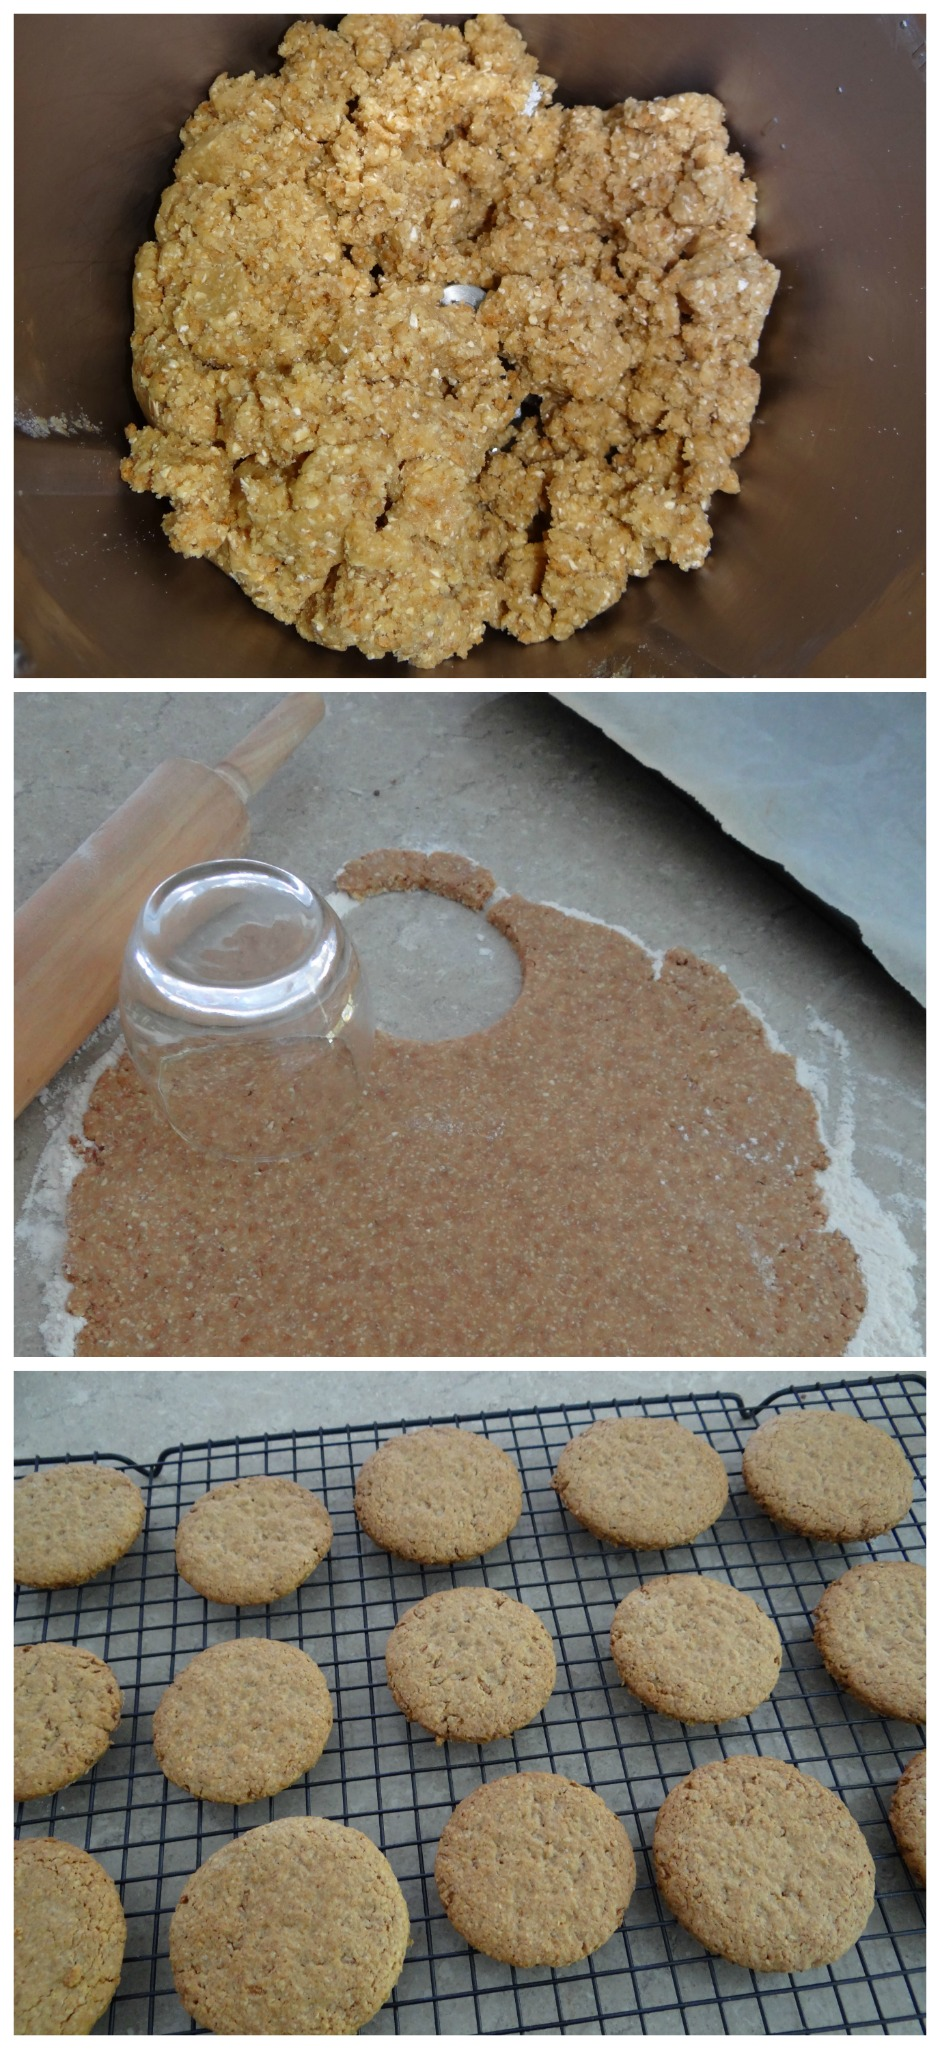 Oat & Bran Cookies - Great for the lunch box